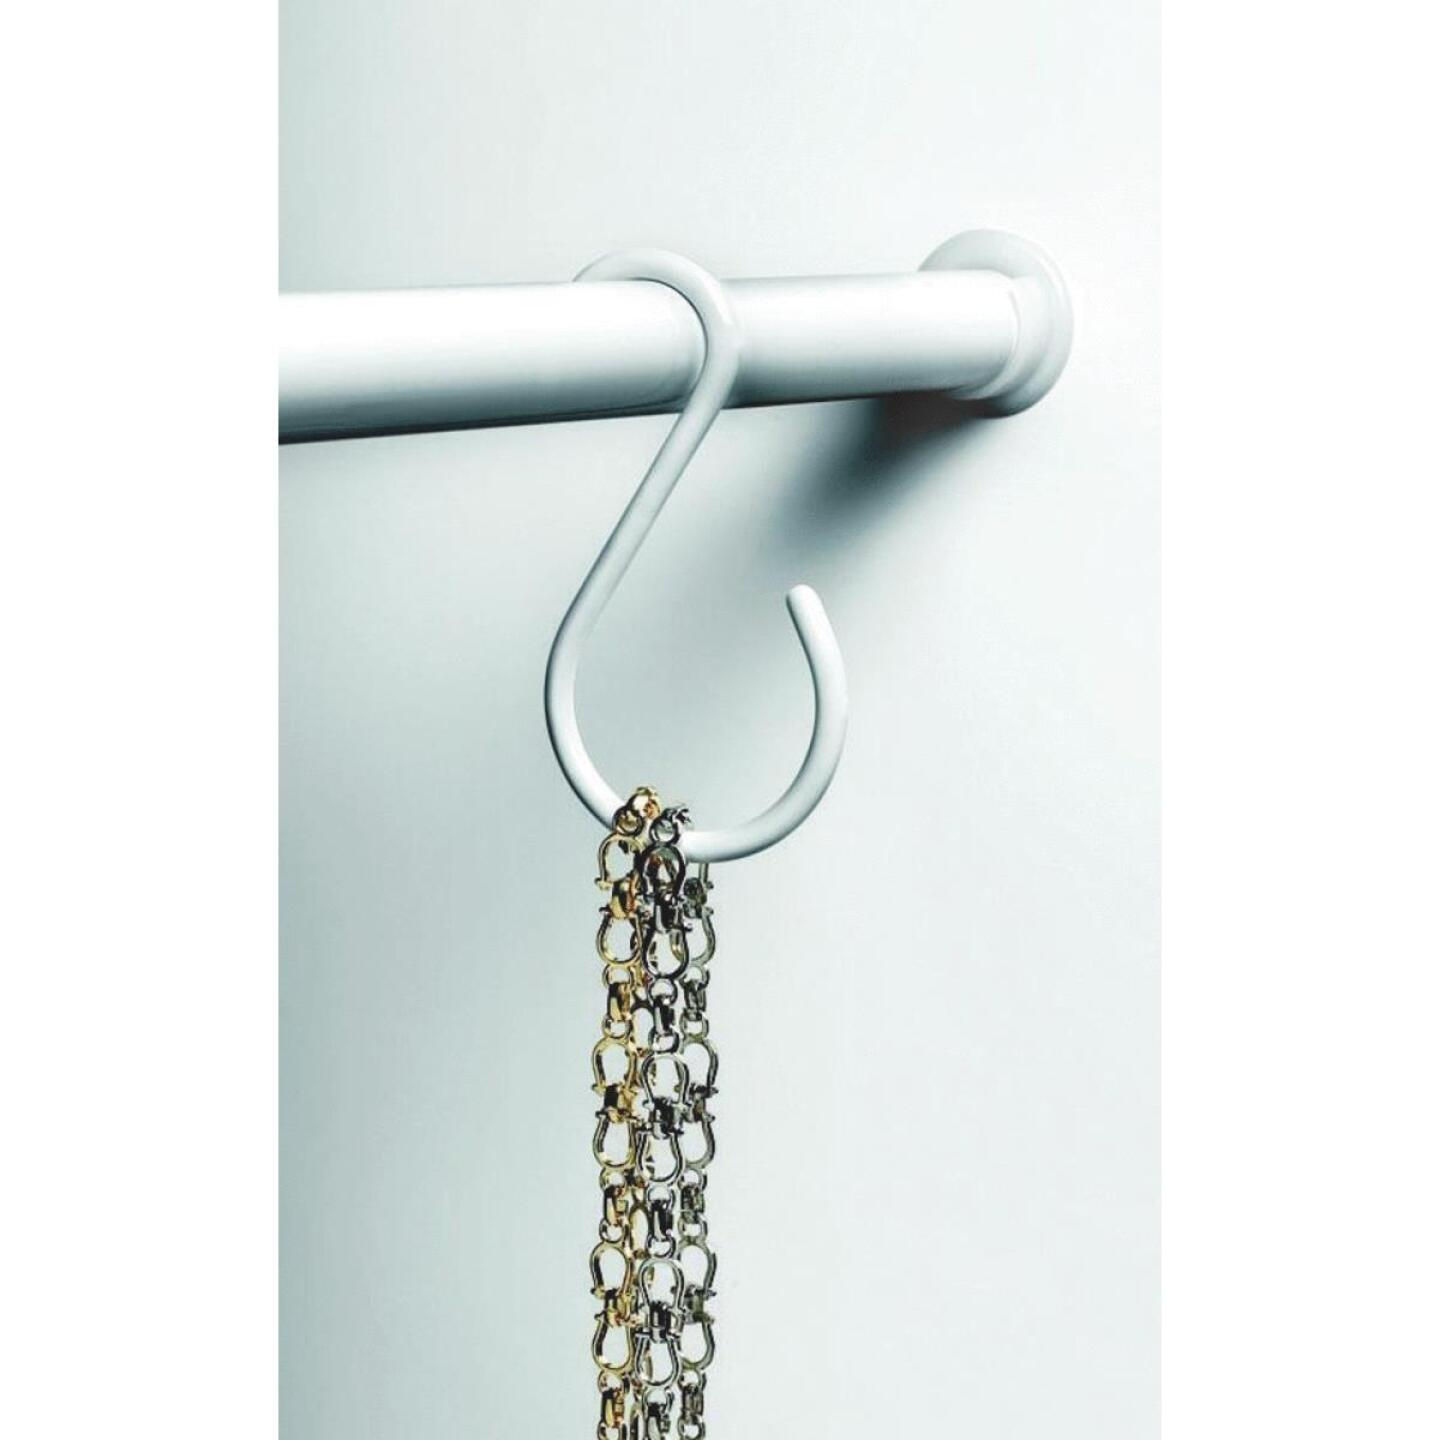 Spectrum White Closet Rod Hook Image 1